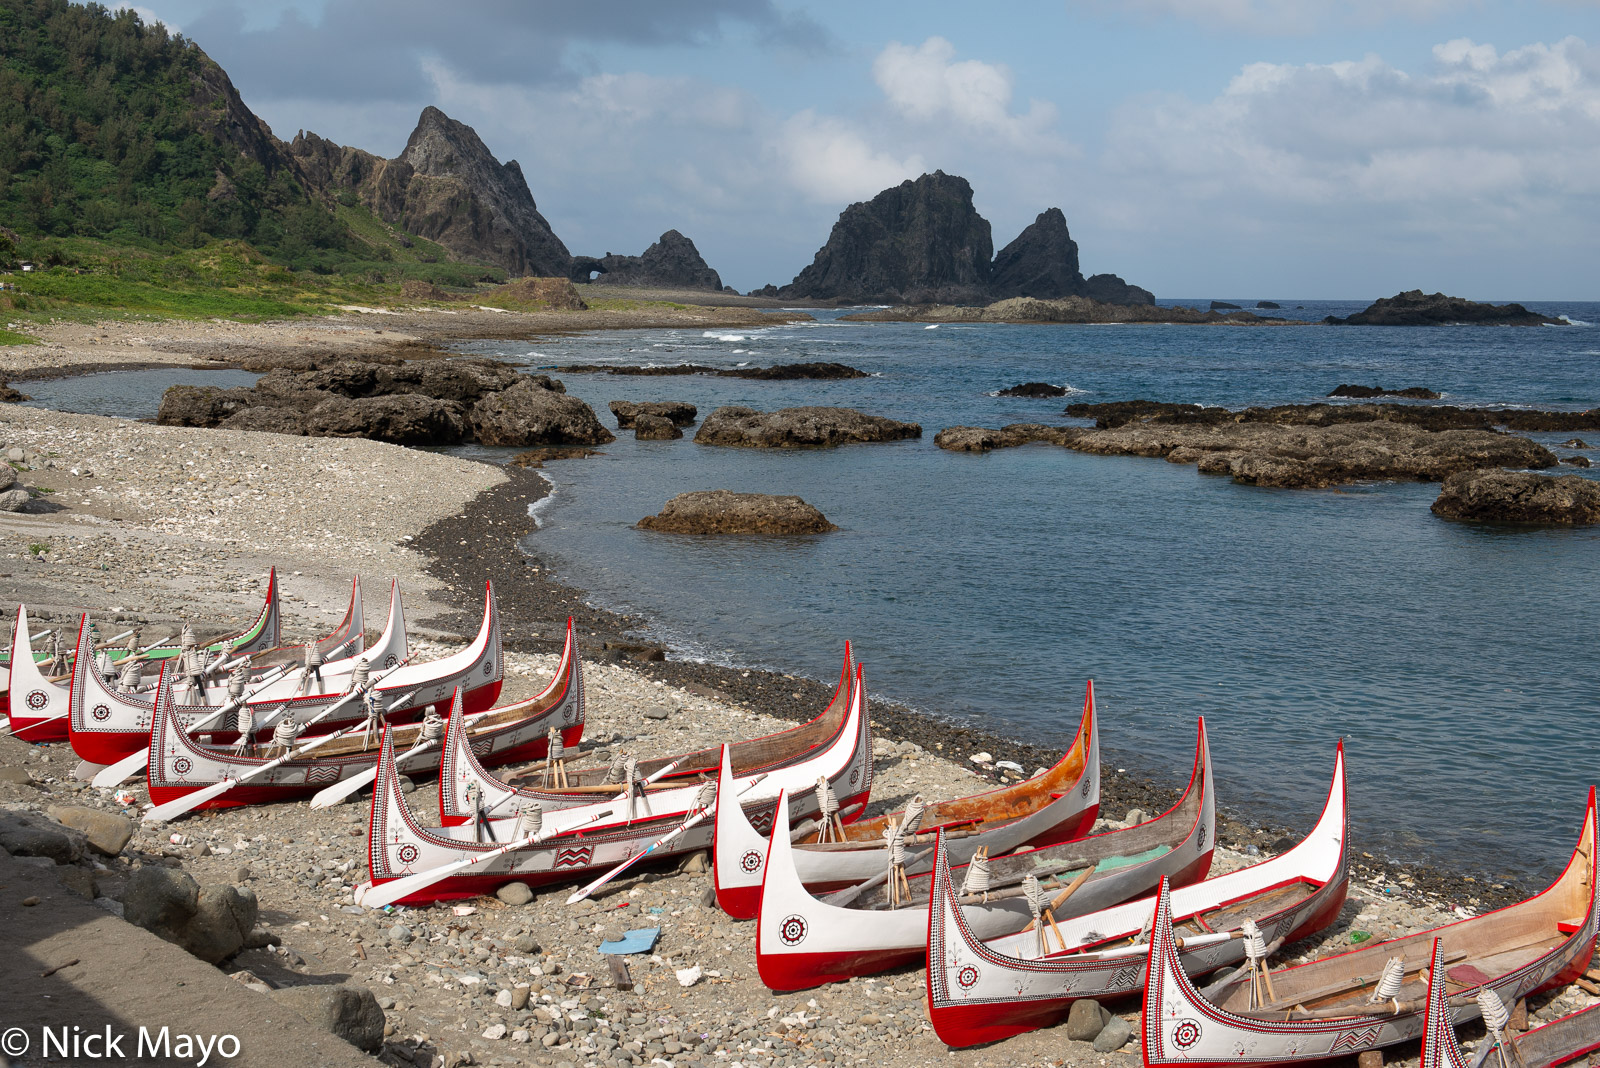 Traditional Tao canoes at Hongtou village on Lanyu.